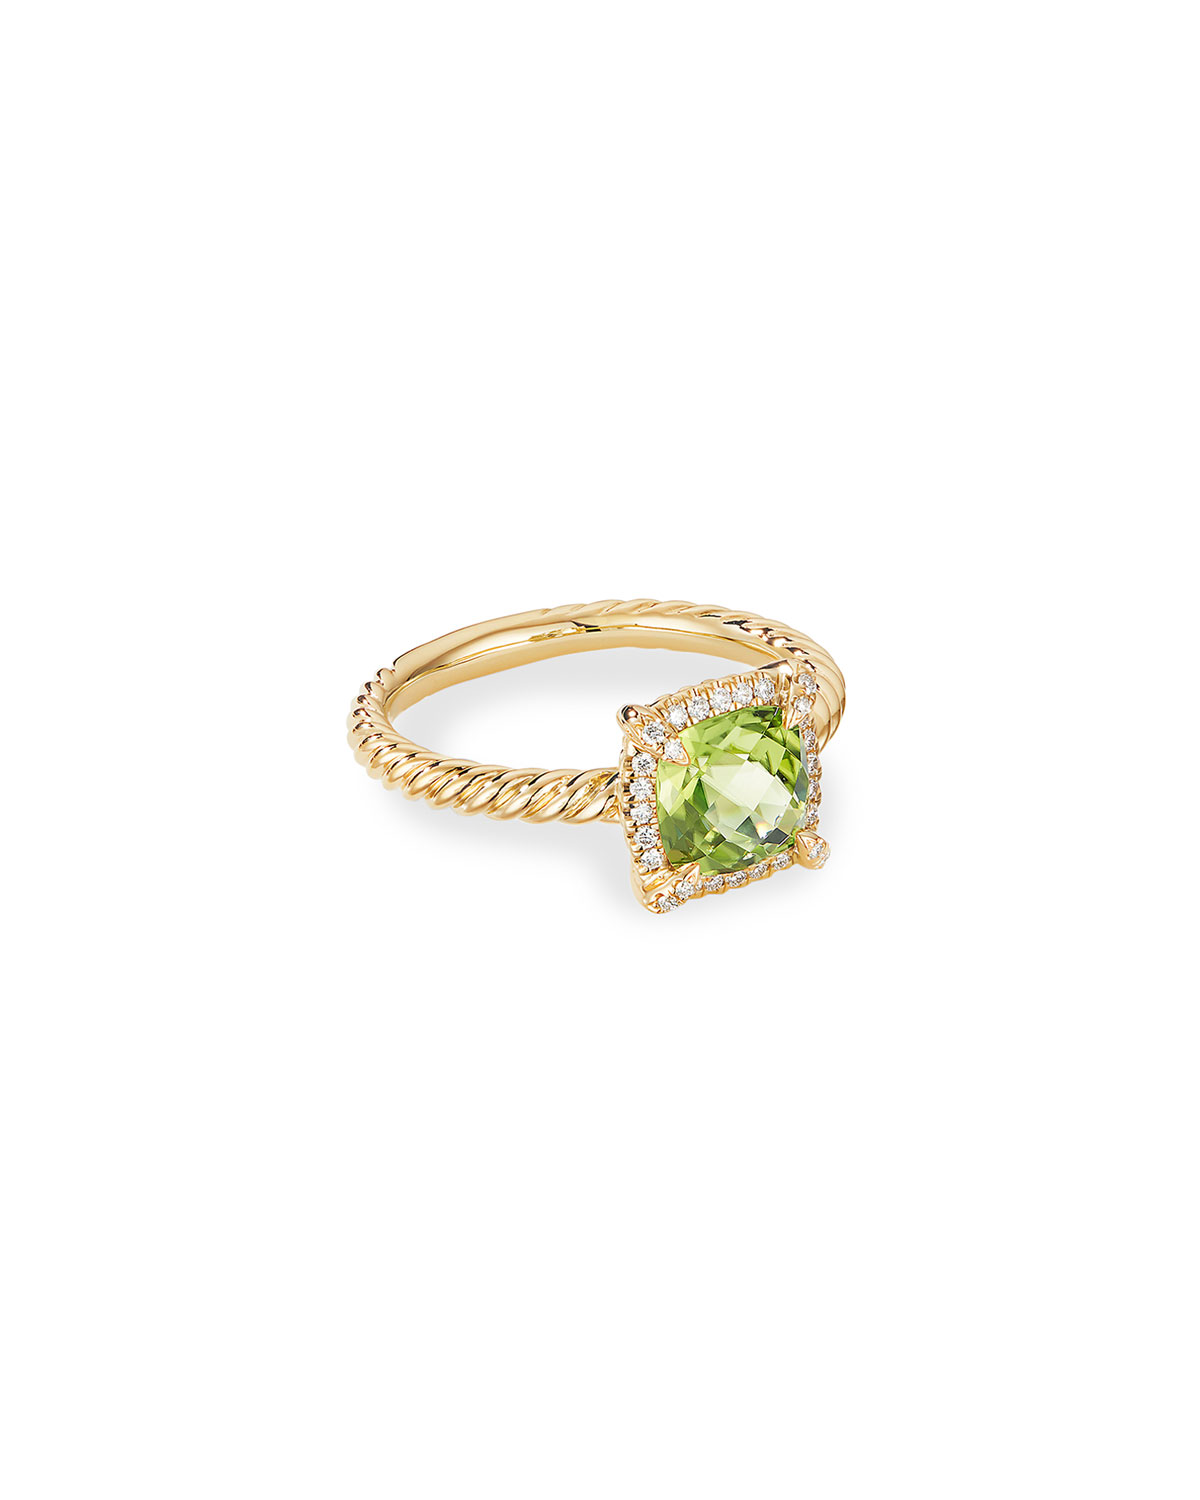 David Yurman Petite Chatelaine Pave Bezel Ring in 18K Gold with Peridot, Size 5